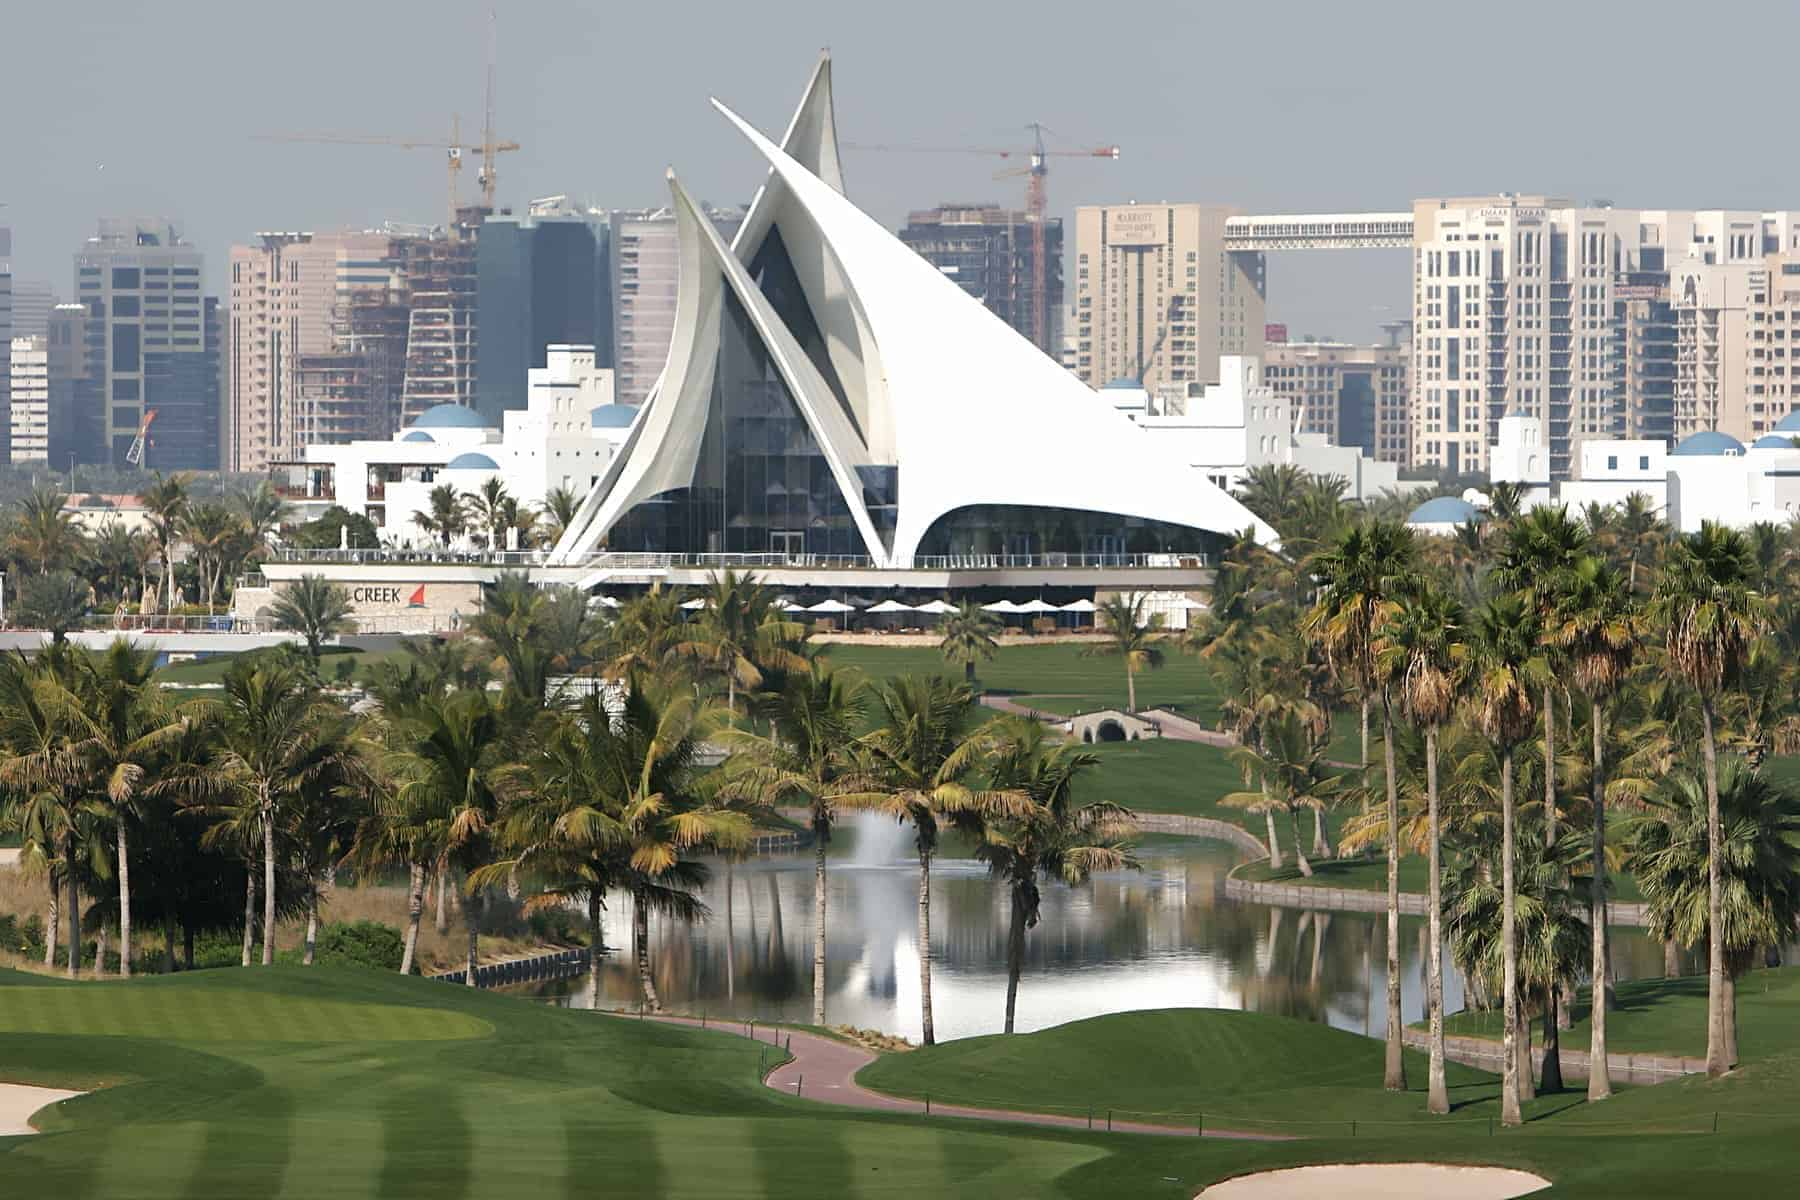 Green golf court with palms and lakes in dubai creek, united arab emirates